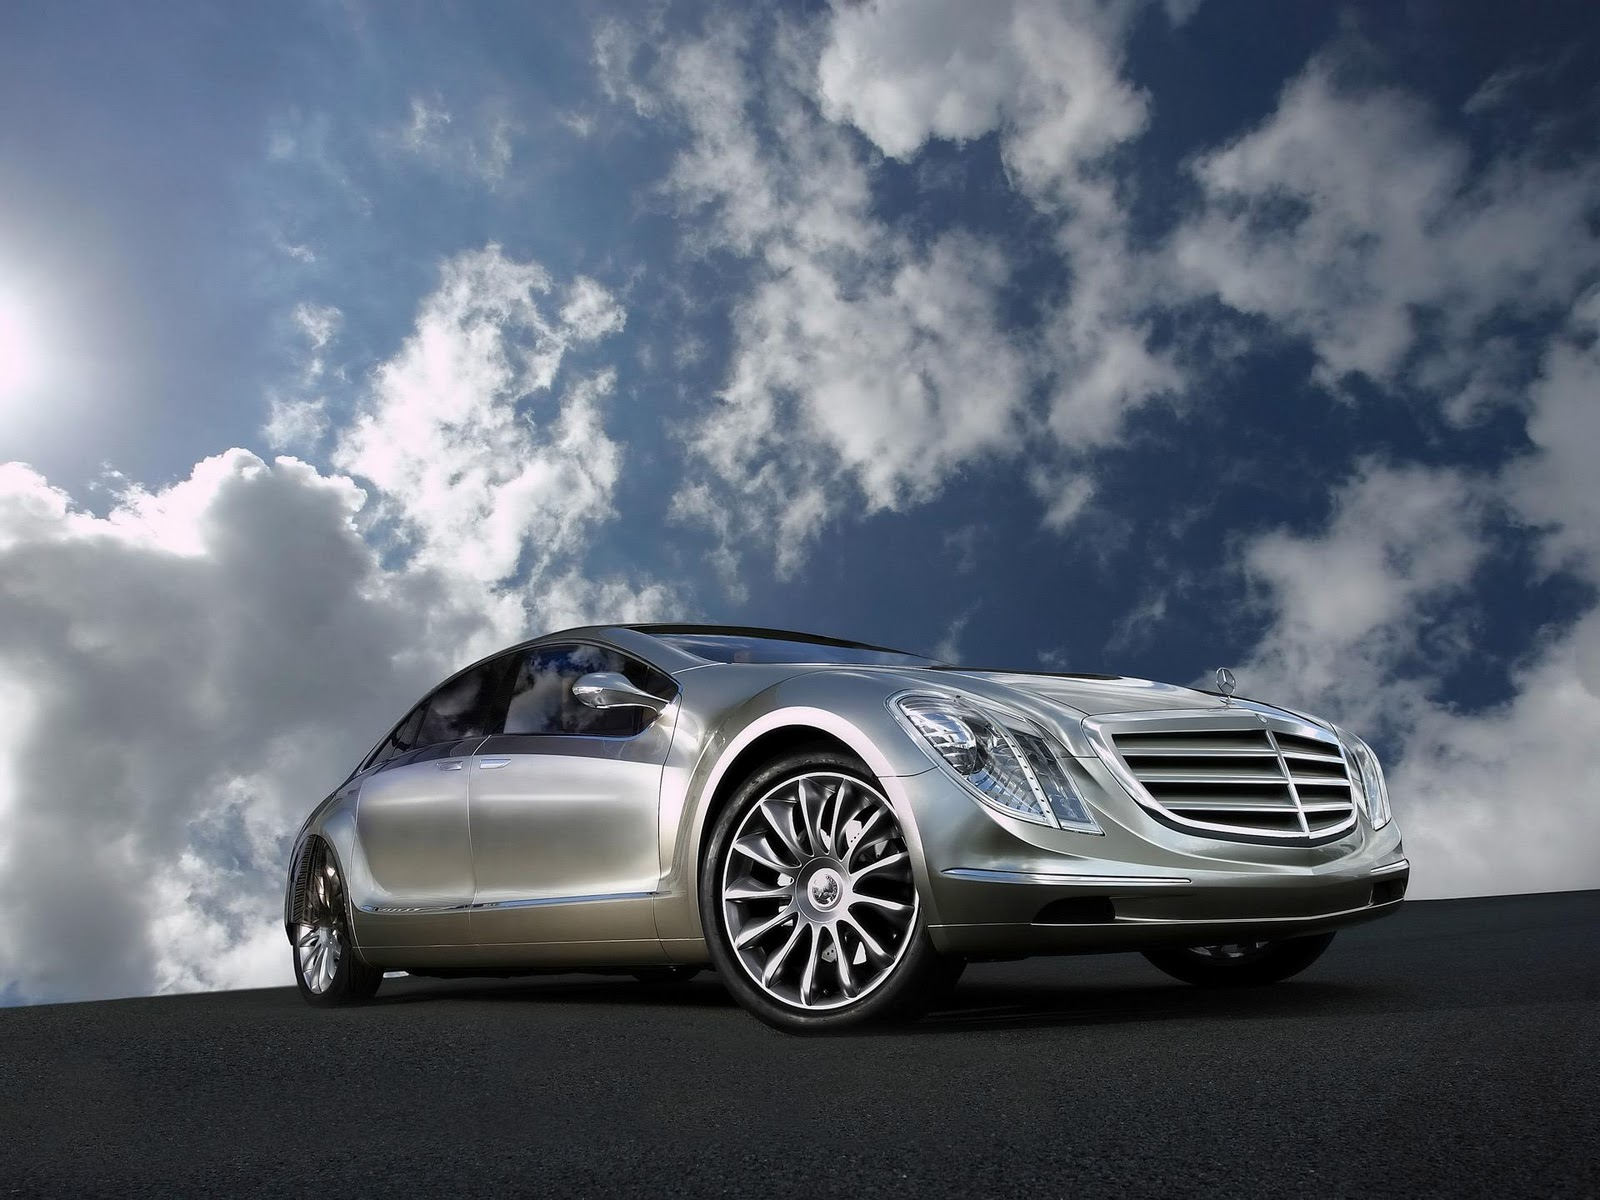 Mercedes benz wallpaper desktop cars n bikes for The latest mercedes benz